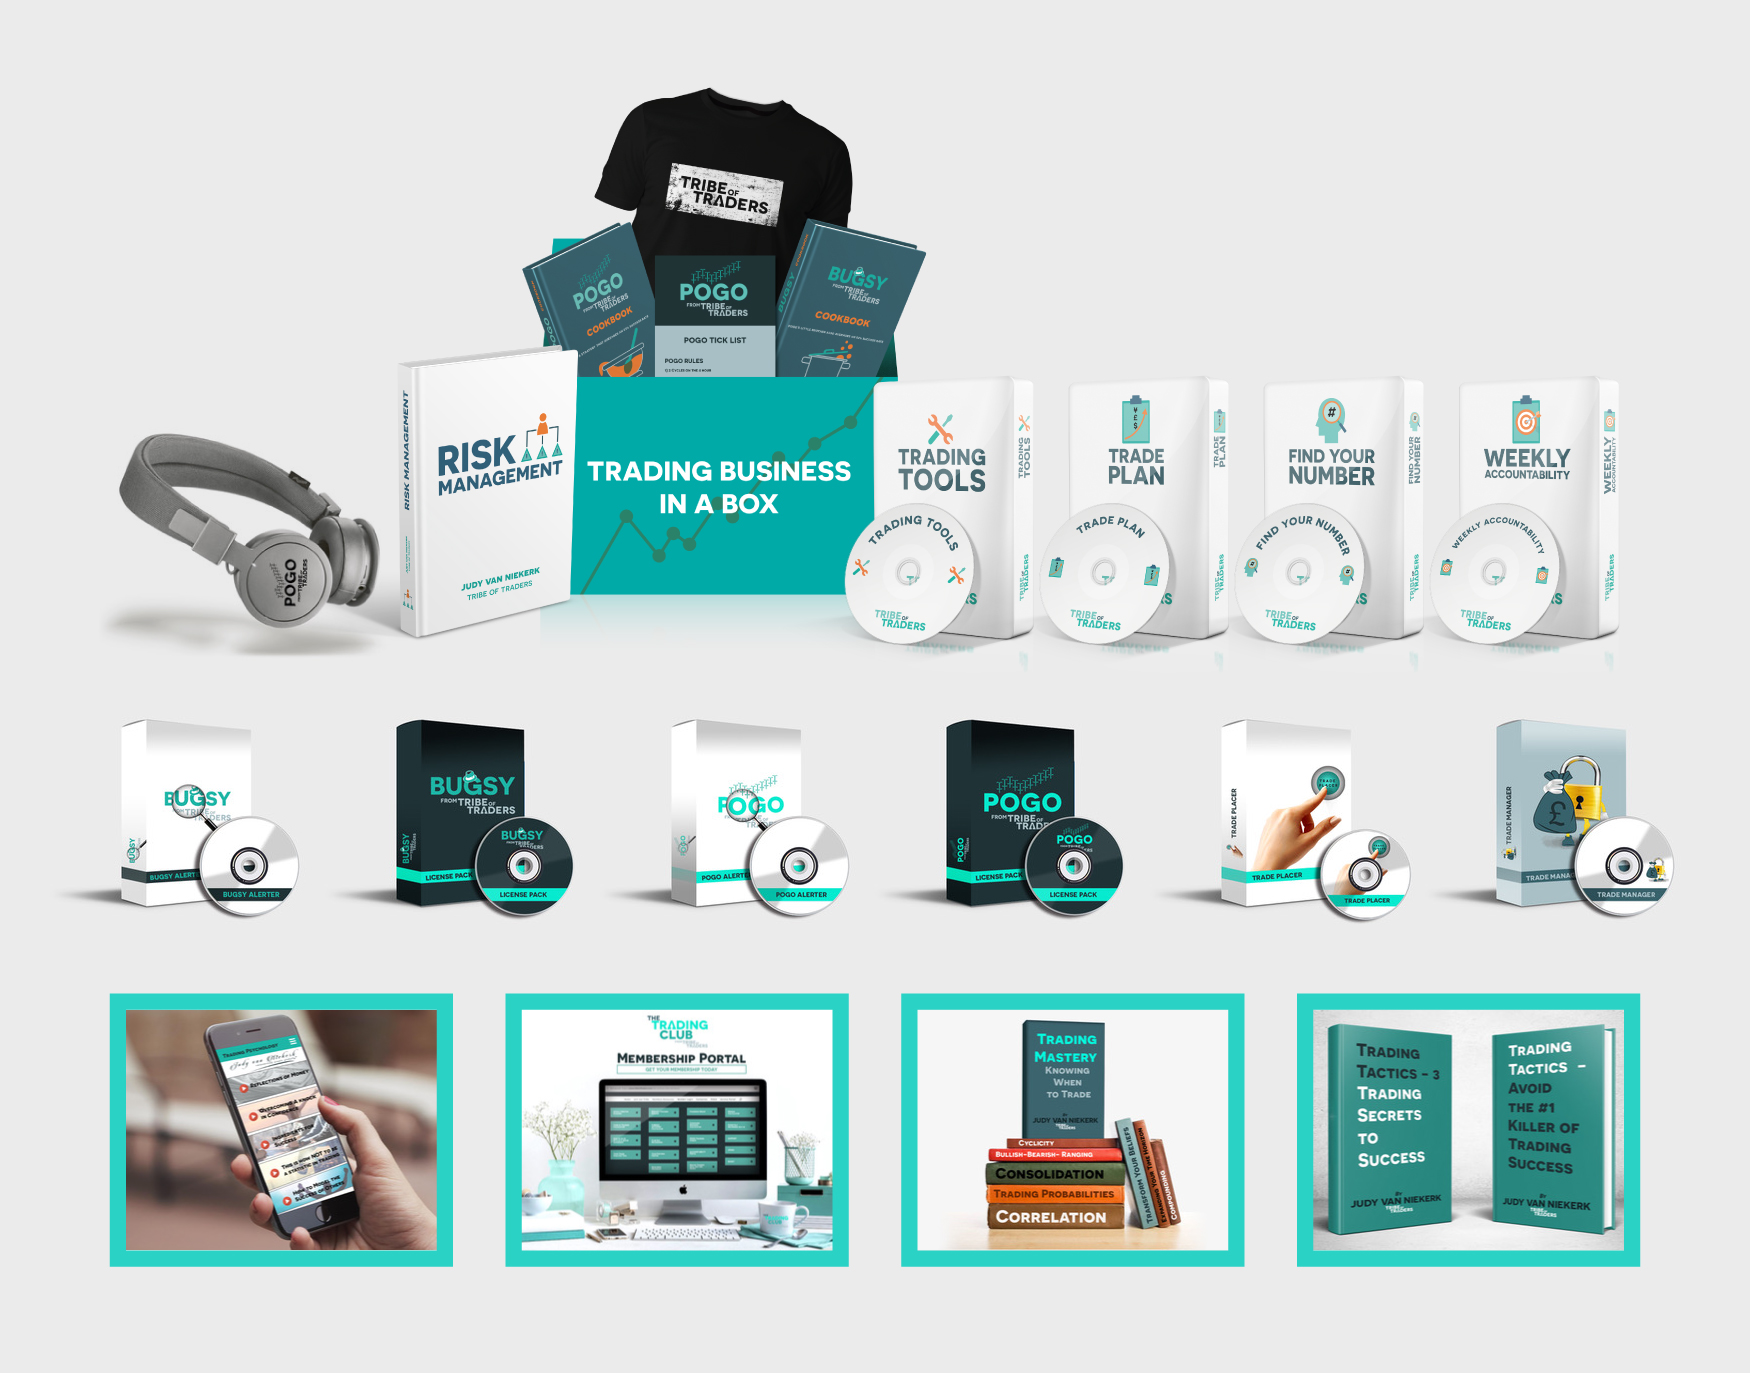 Trading Business In a Box Image